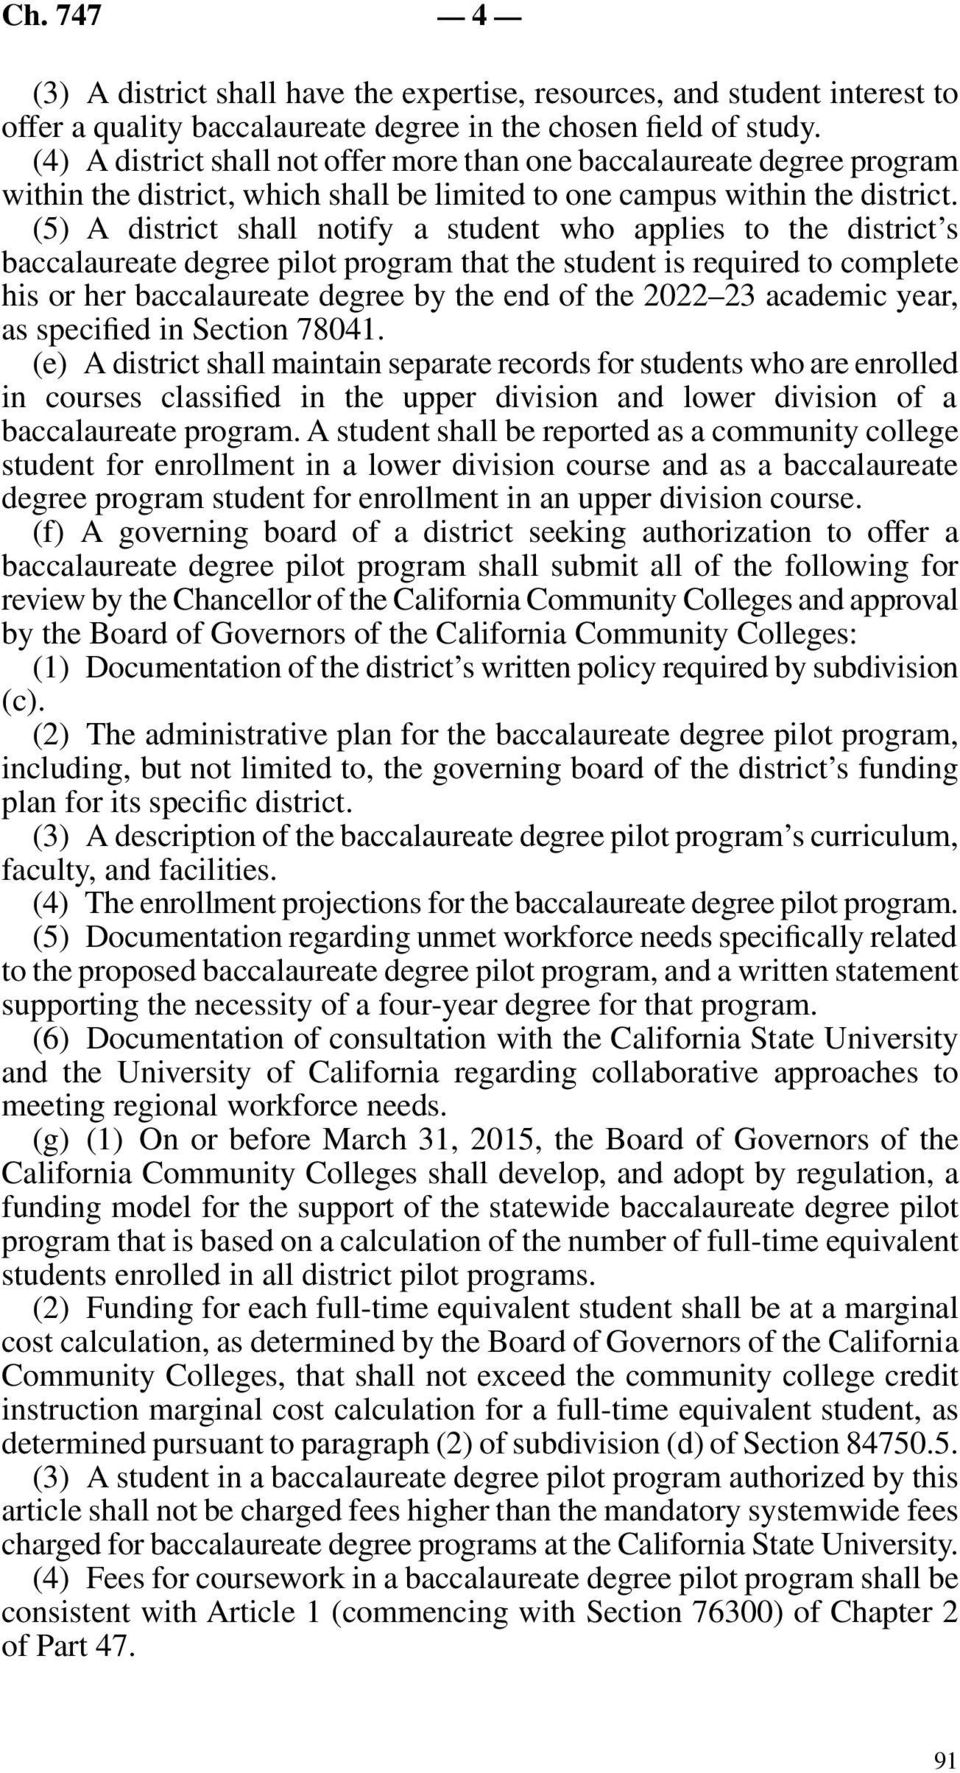 (5) A district shall notify a student who applies to the district s baccalaureate degree pilot program that the student is required to complete his or her baccalaureate degree by the end of the 2022